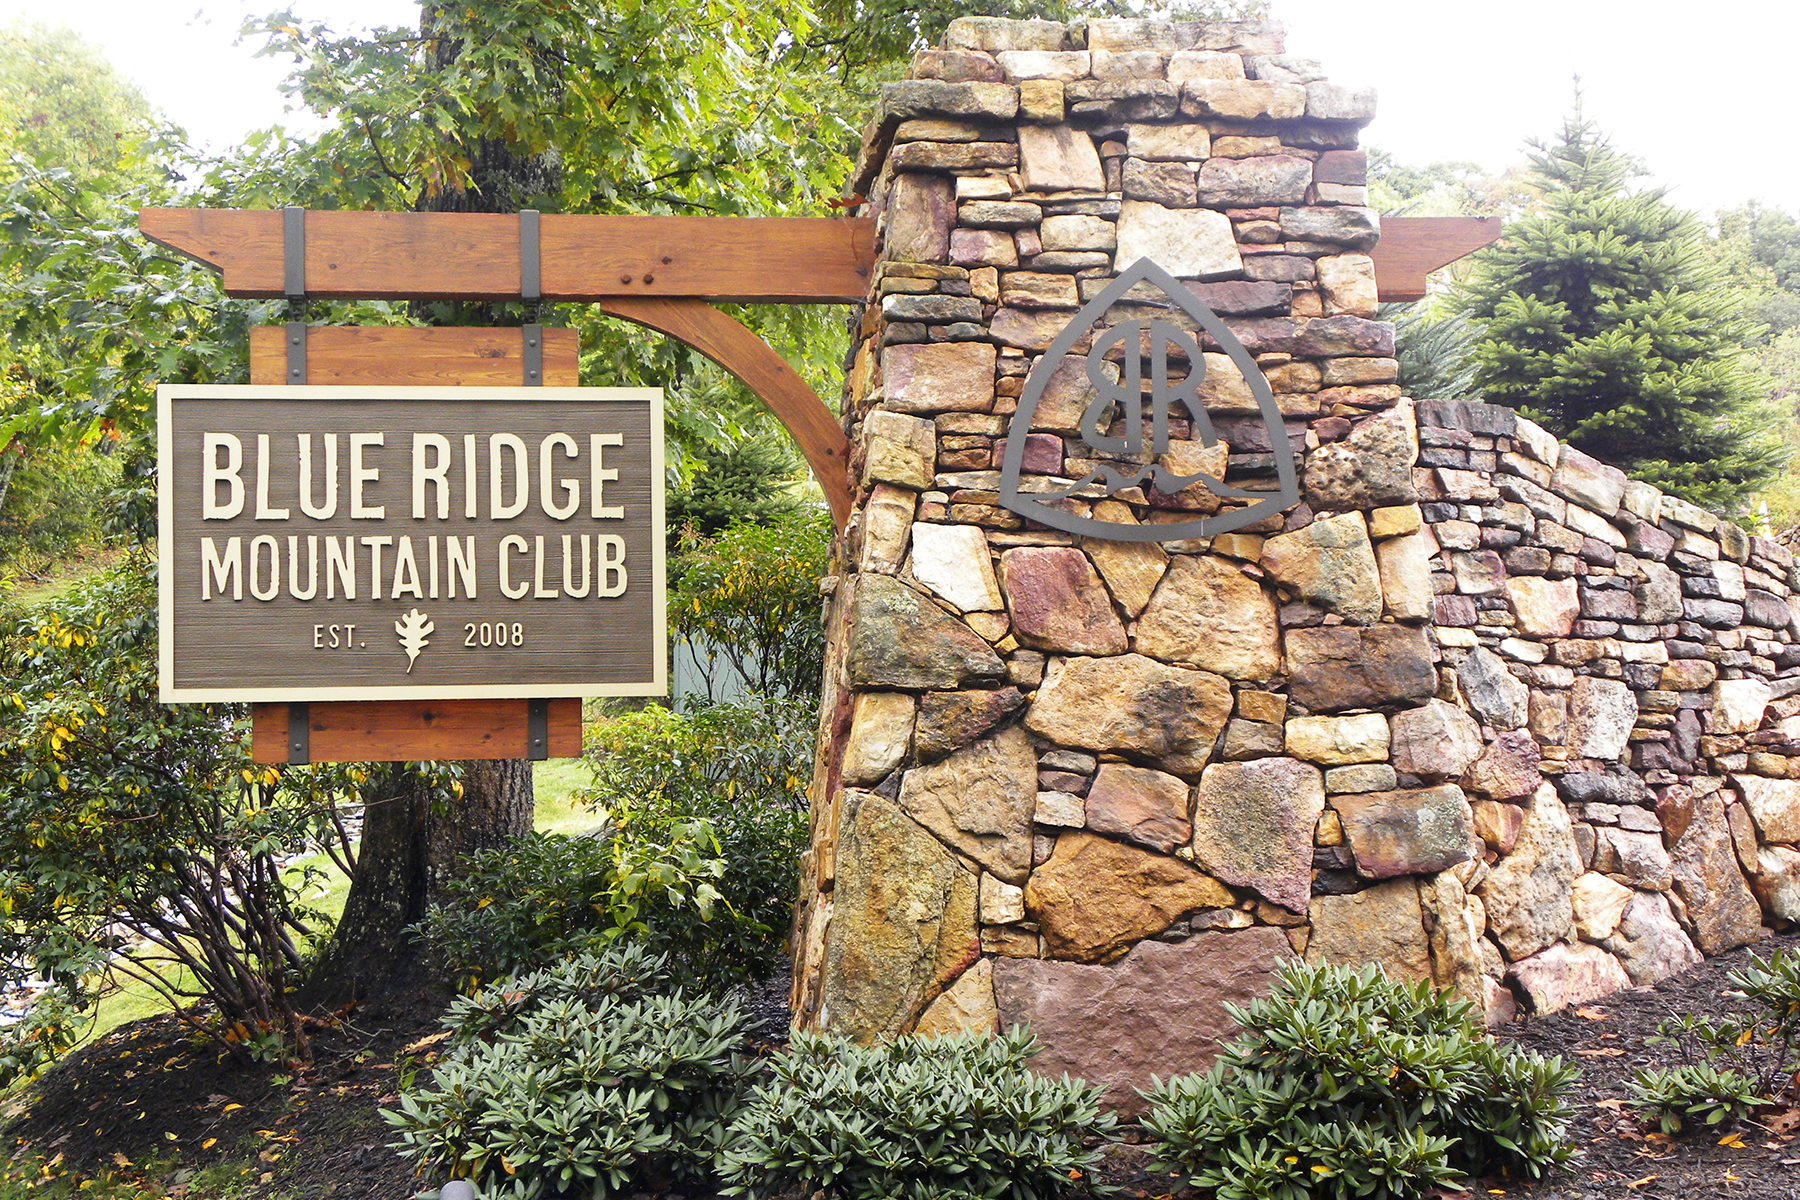 Land for Sale at BOONE - BLUE RIDGE MOUNTAIN CLUB LOT 216 Reynolds Pkwy, Boone, North Carolina 28607 United States